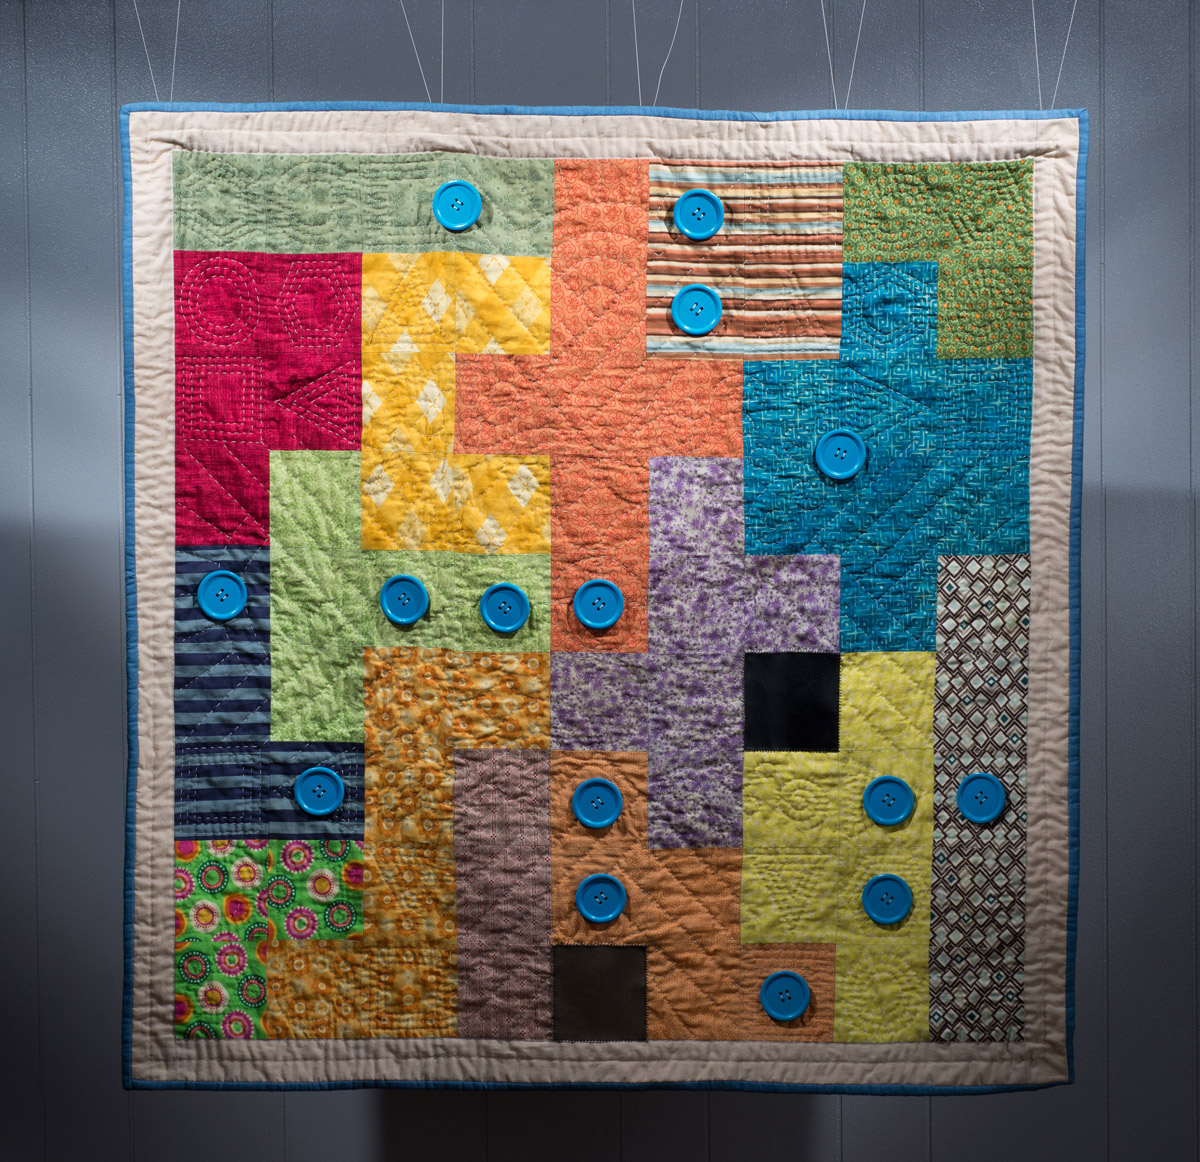 The final quilt on display